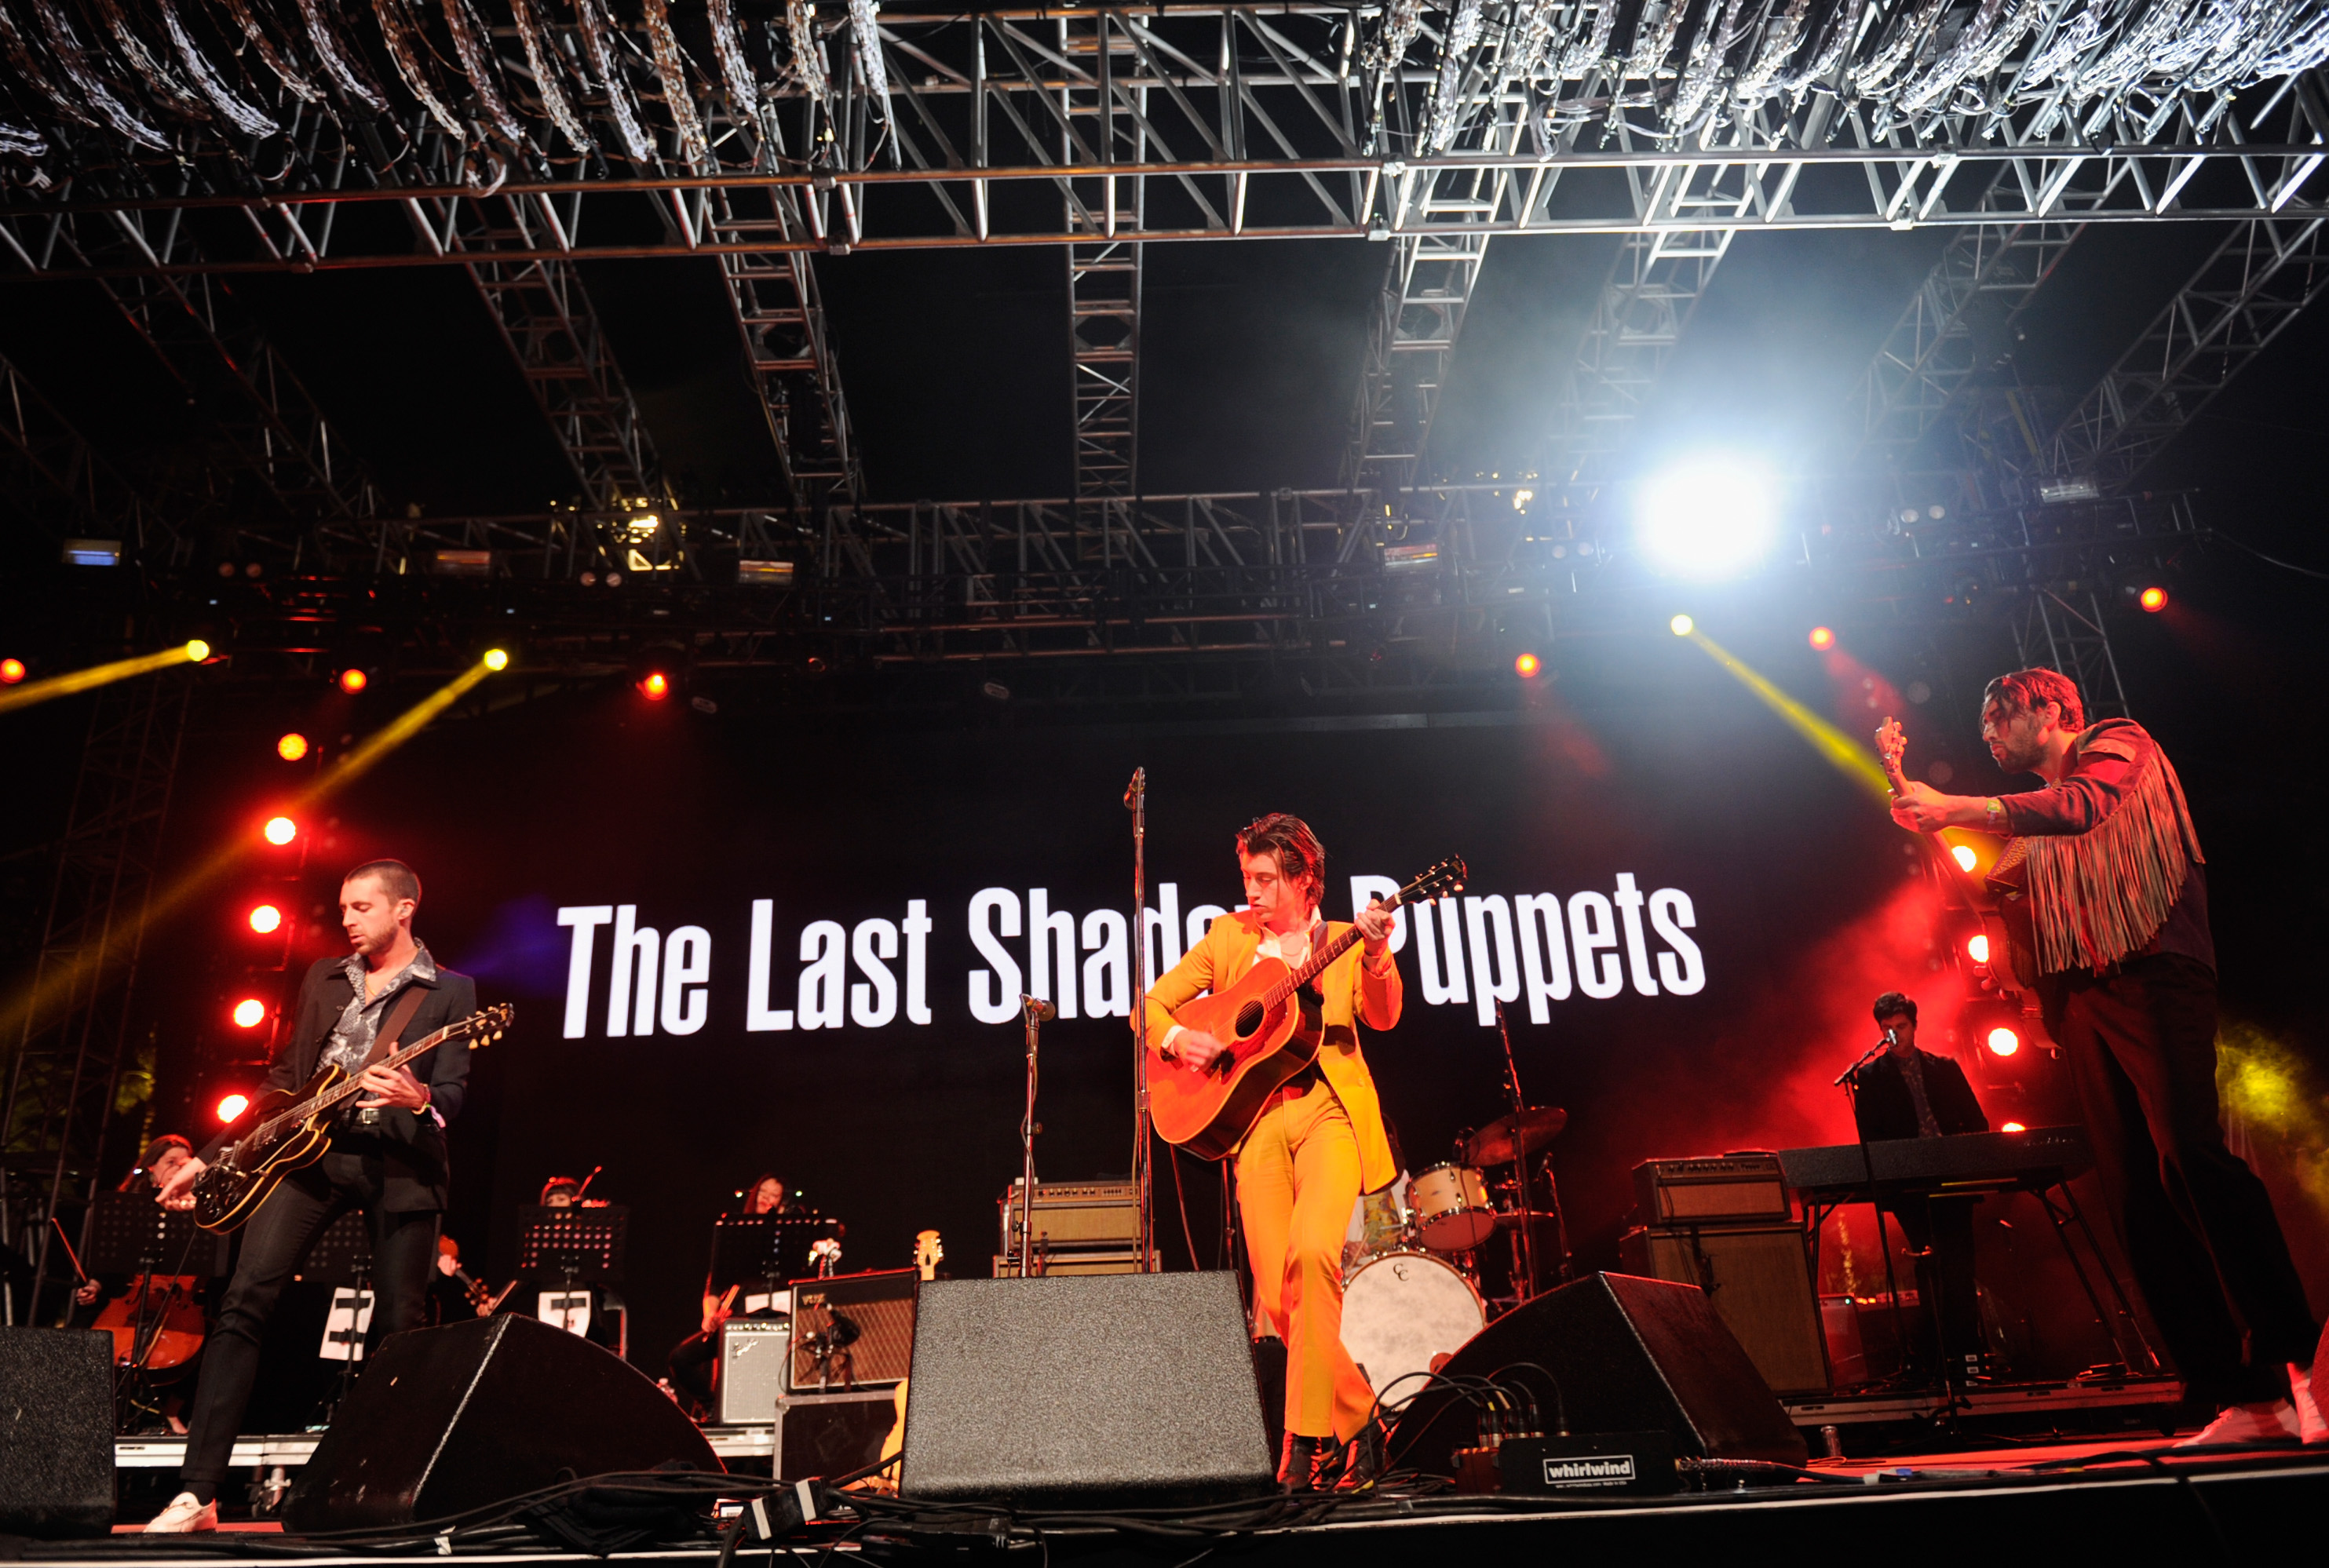 INDIO, CA - APRIL 15: (L-R) Musicians Miles Kane, Alex Turner, and Zach Dawes of The Last Shadow Puppets perform onstage during day 1 of the 2016 Coachella Valley Music & Arts Festival Weekend 1 at the Empire Polo Club on April 15, 2016 in Indio, California. (Photo by Emma McIntyre/Getty Images for Coachella)